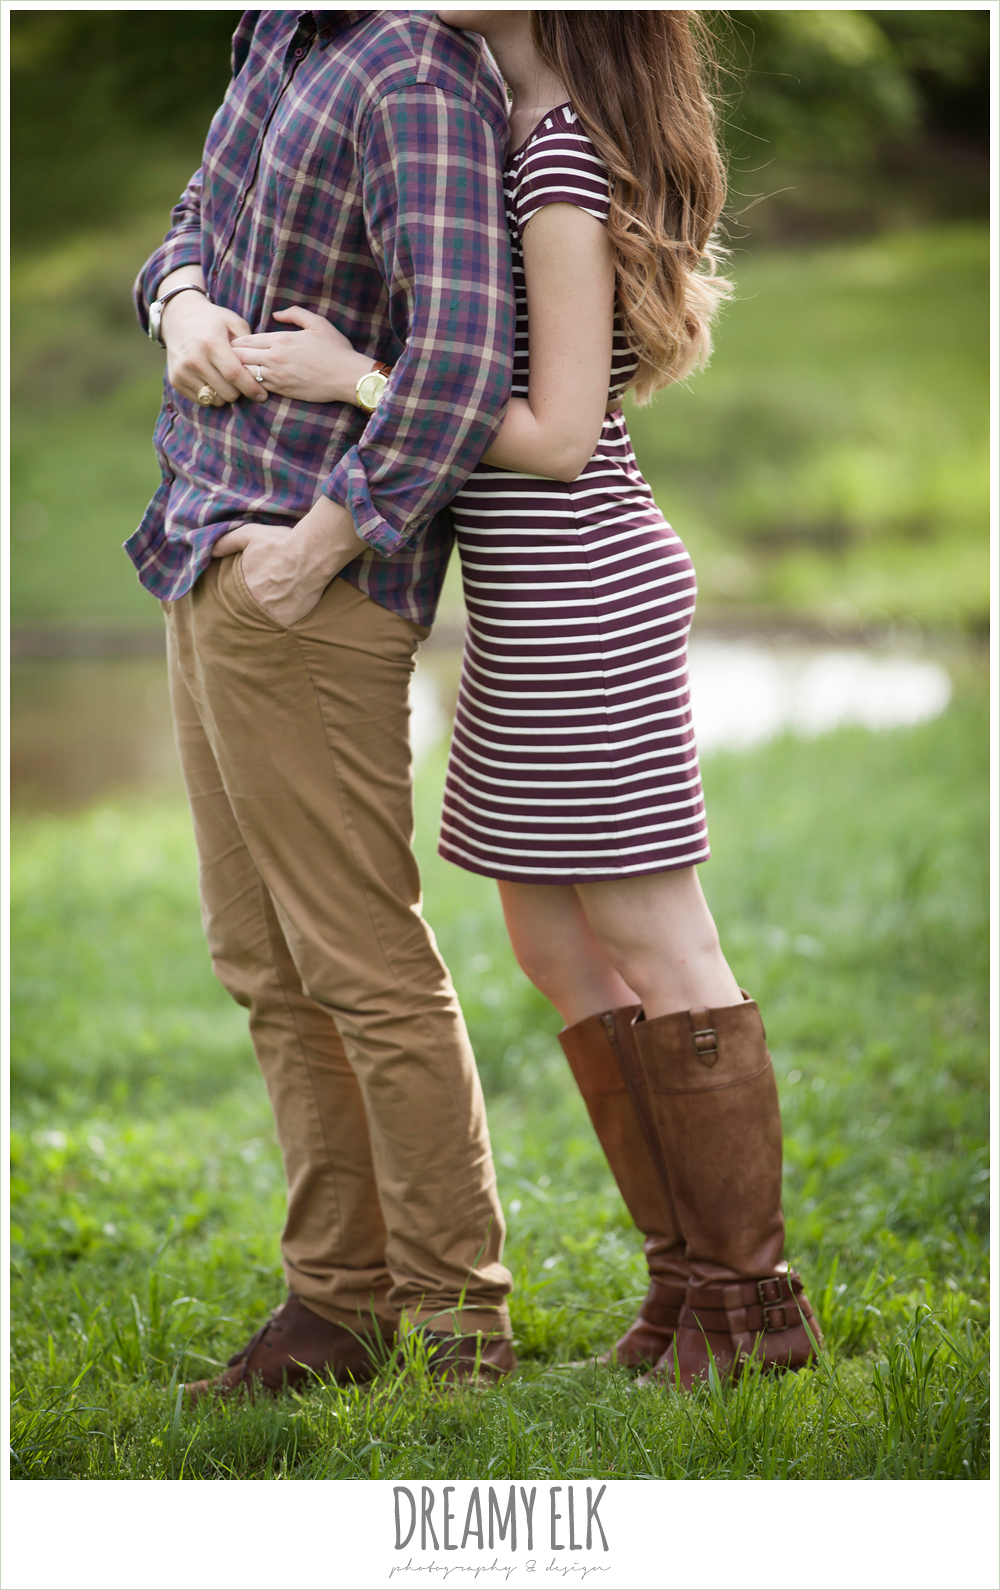 coordinating outfits for engagement photos, girl hugging guy from behind, woodsy engagement photo, research park, college station, texas {dreamy elk photography and design}